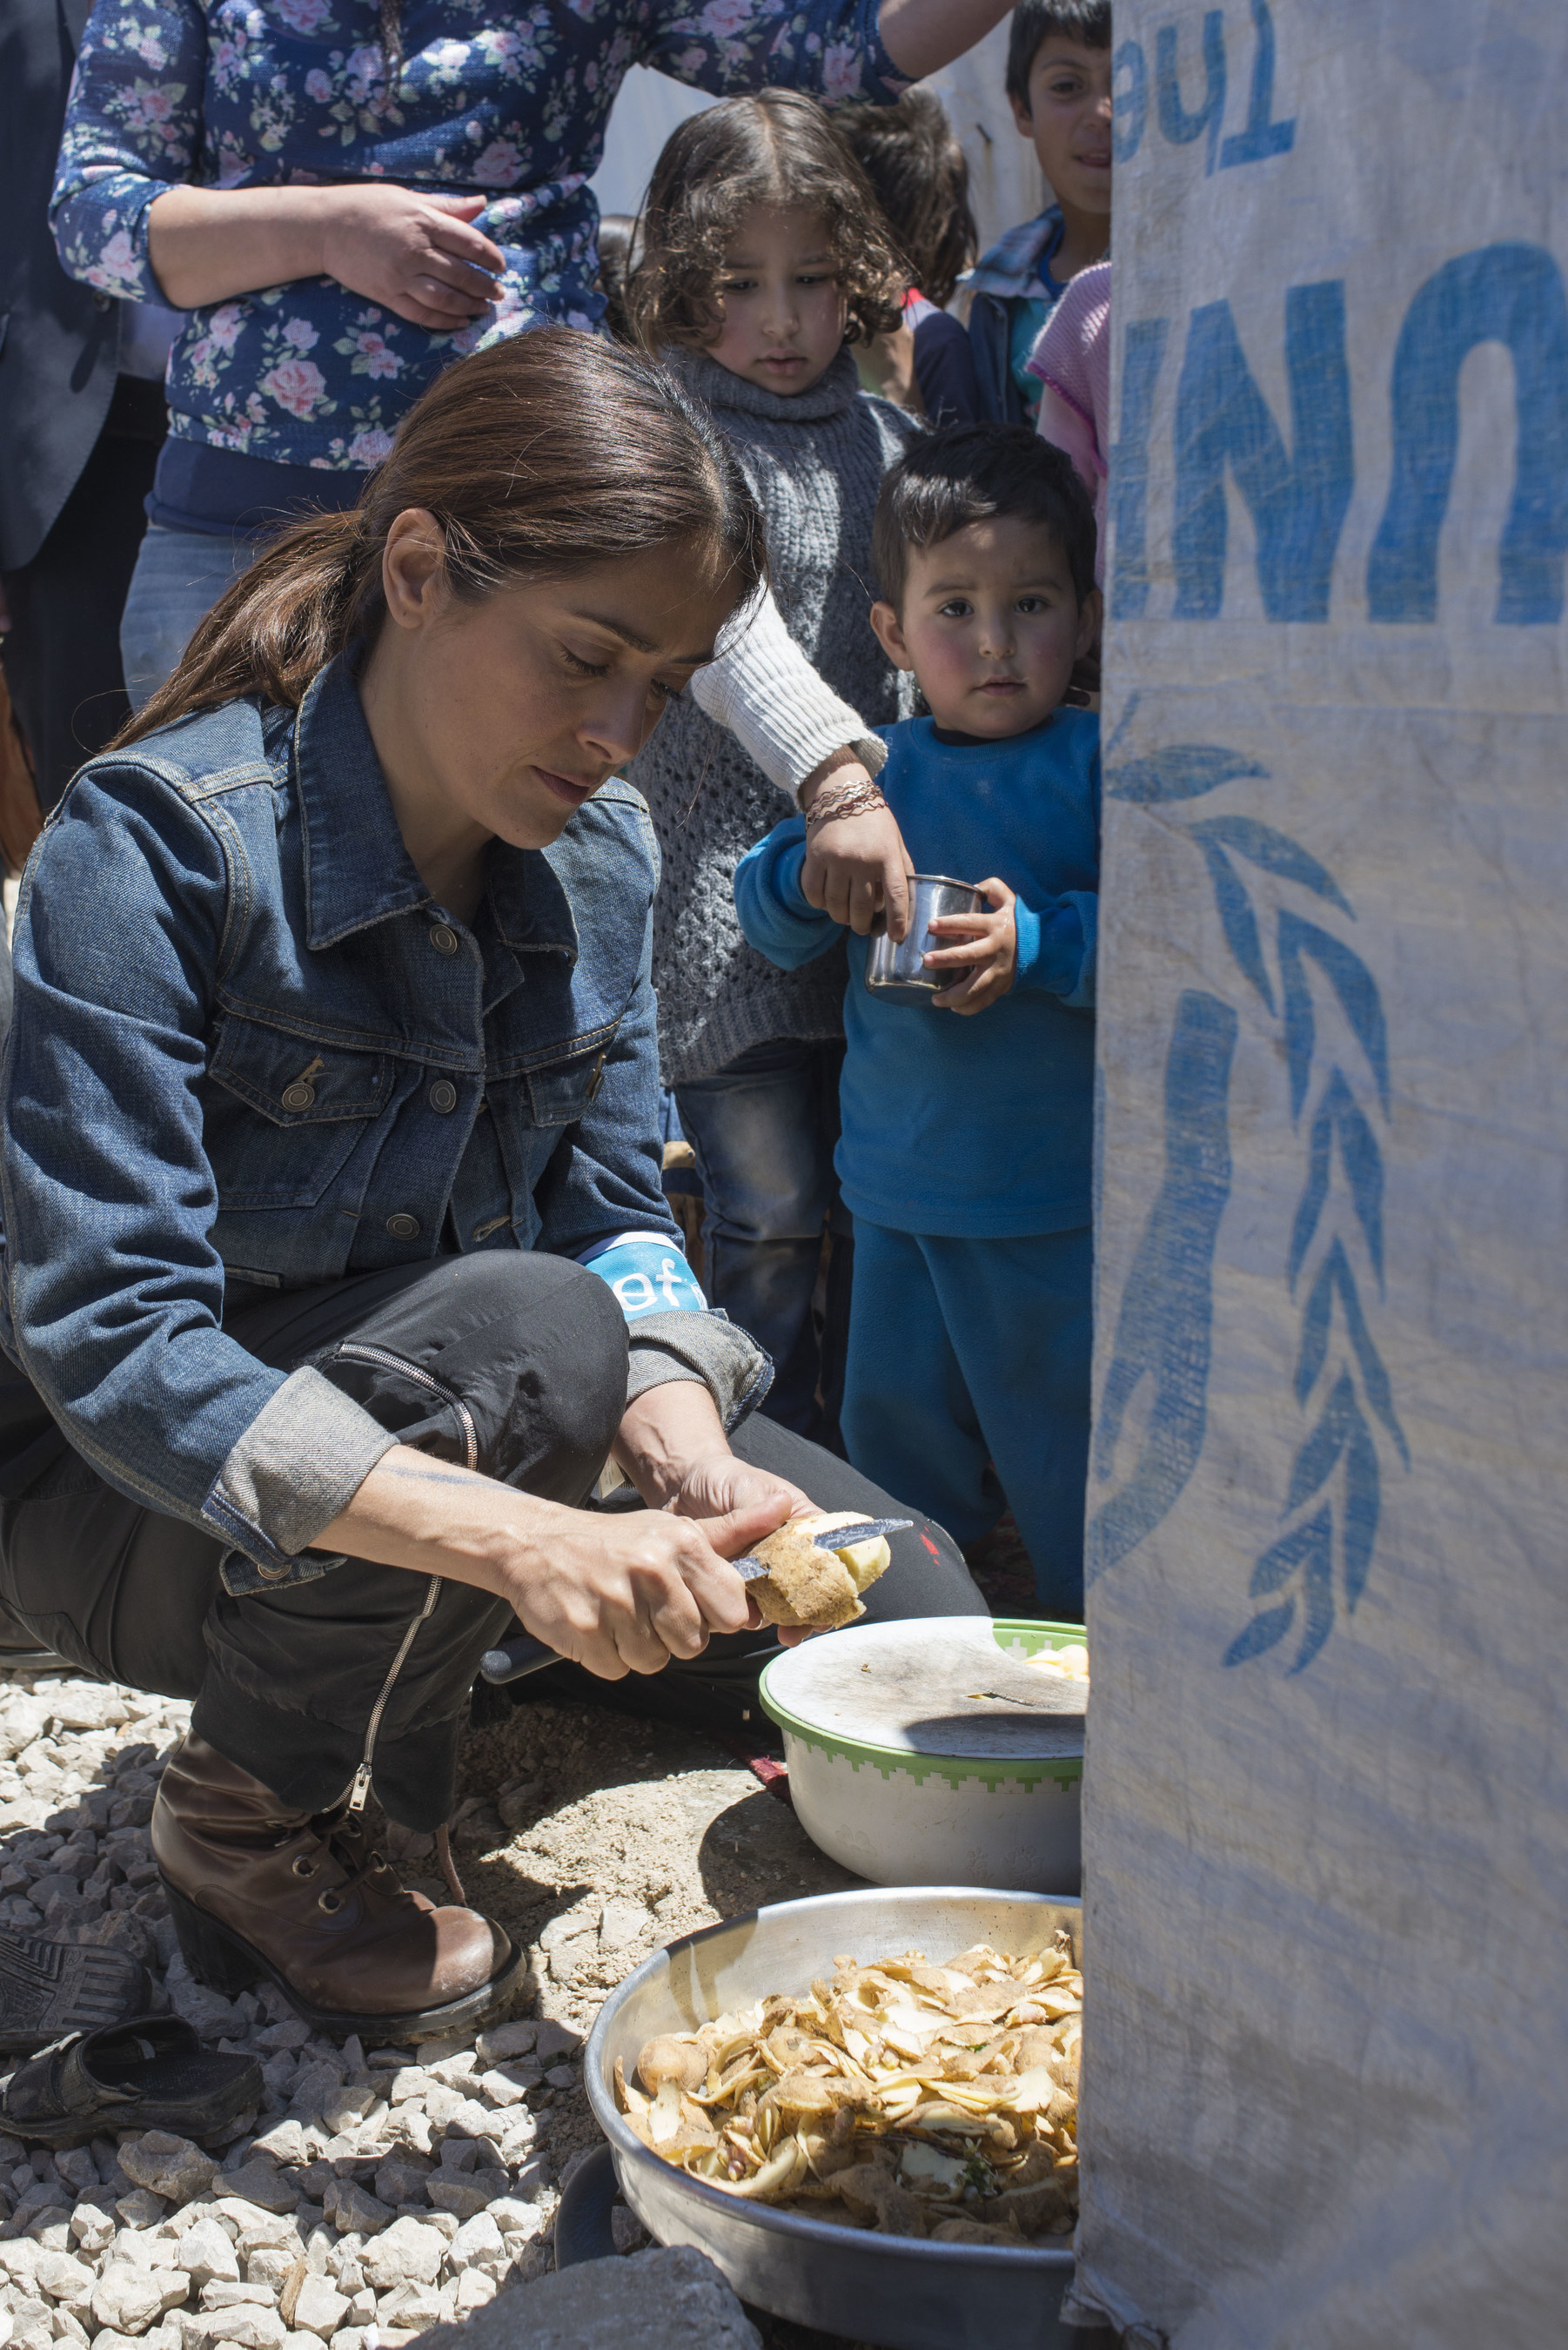 UNICEF supporter and CHIME FOR CHANGE campaign Co-Founder Salma Hayek helps prepare food for Syrian refugees in Lebanon. On April 25, Hayek visited the region with UNICEF to draw attention to the urgent humanitarian needs of children and families whose lives have been upended by the conflict in Syria. Hayek also helped launch Gucci's CHIME for the Children of Syria, a fundraising appeal to support children and families affected by the crisis.